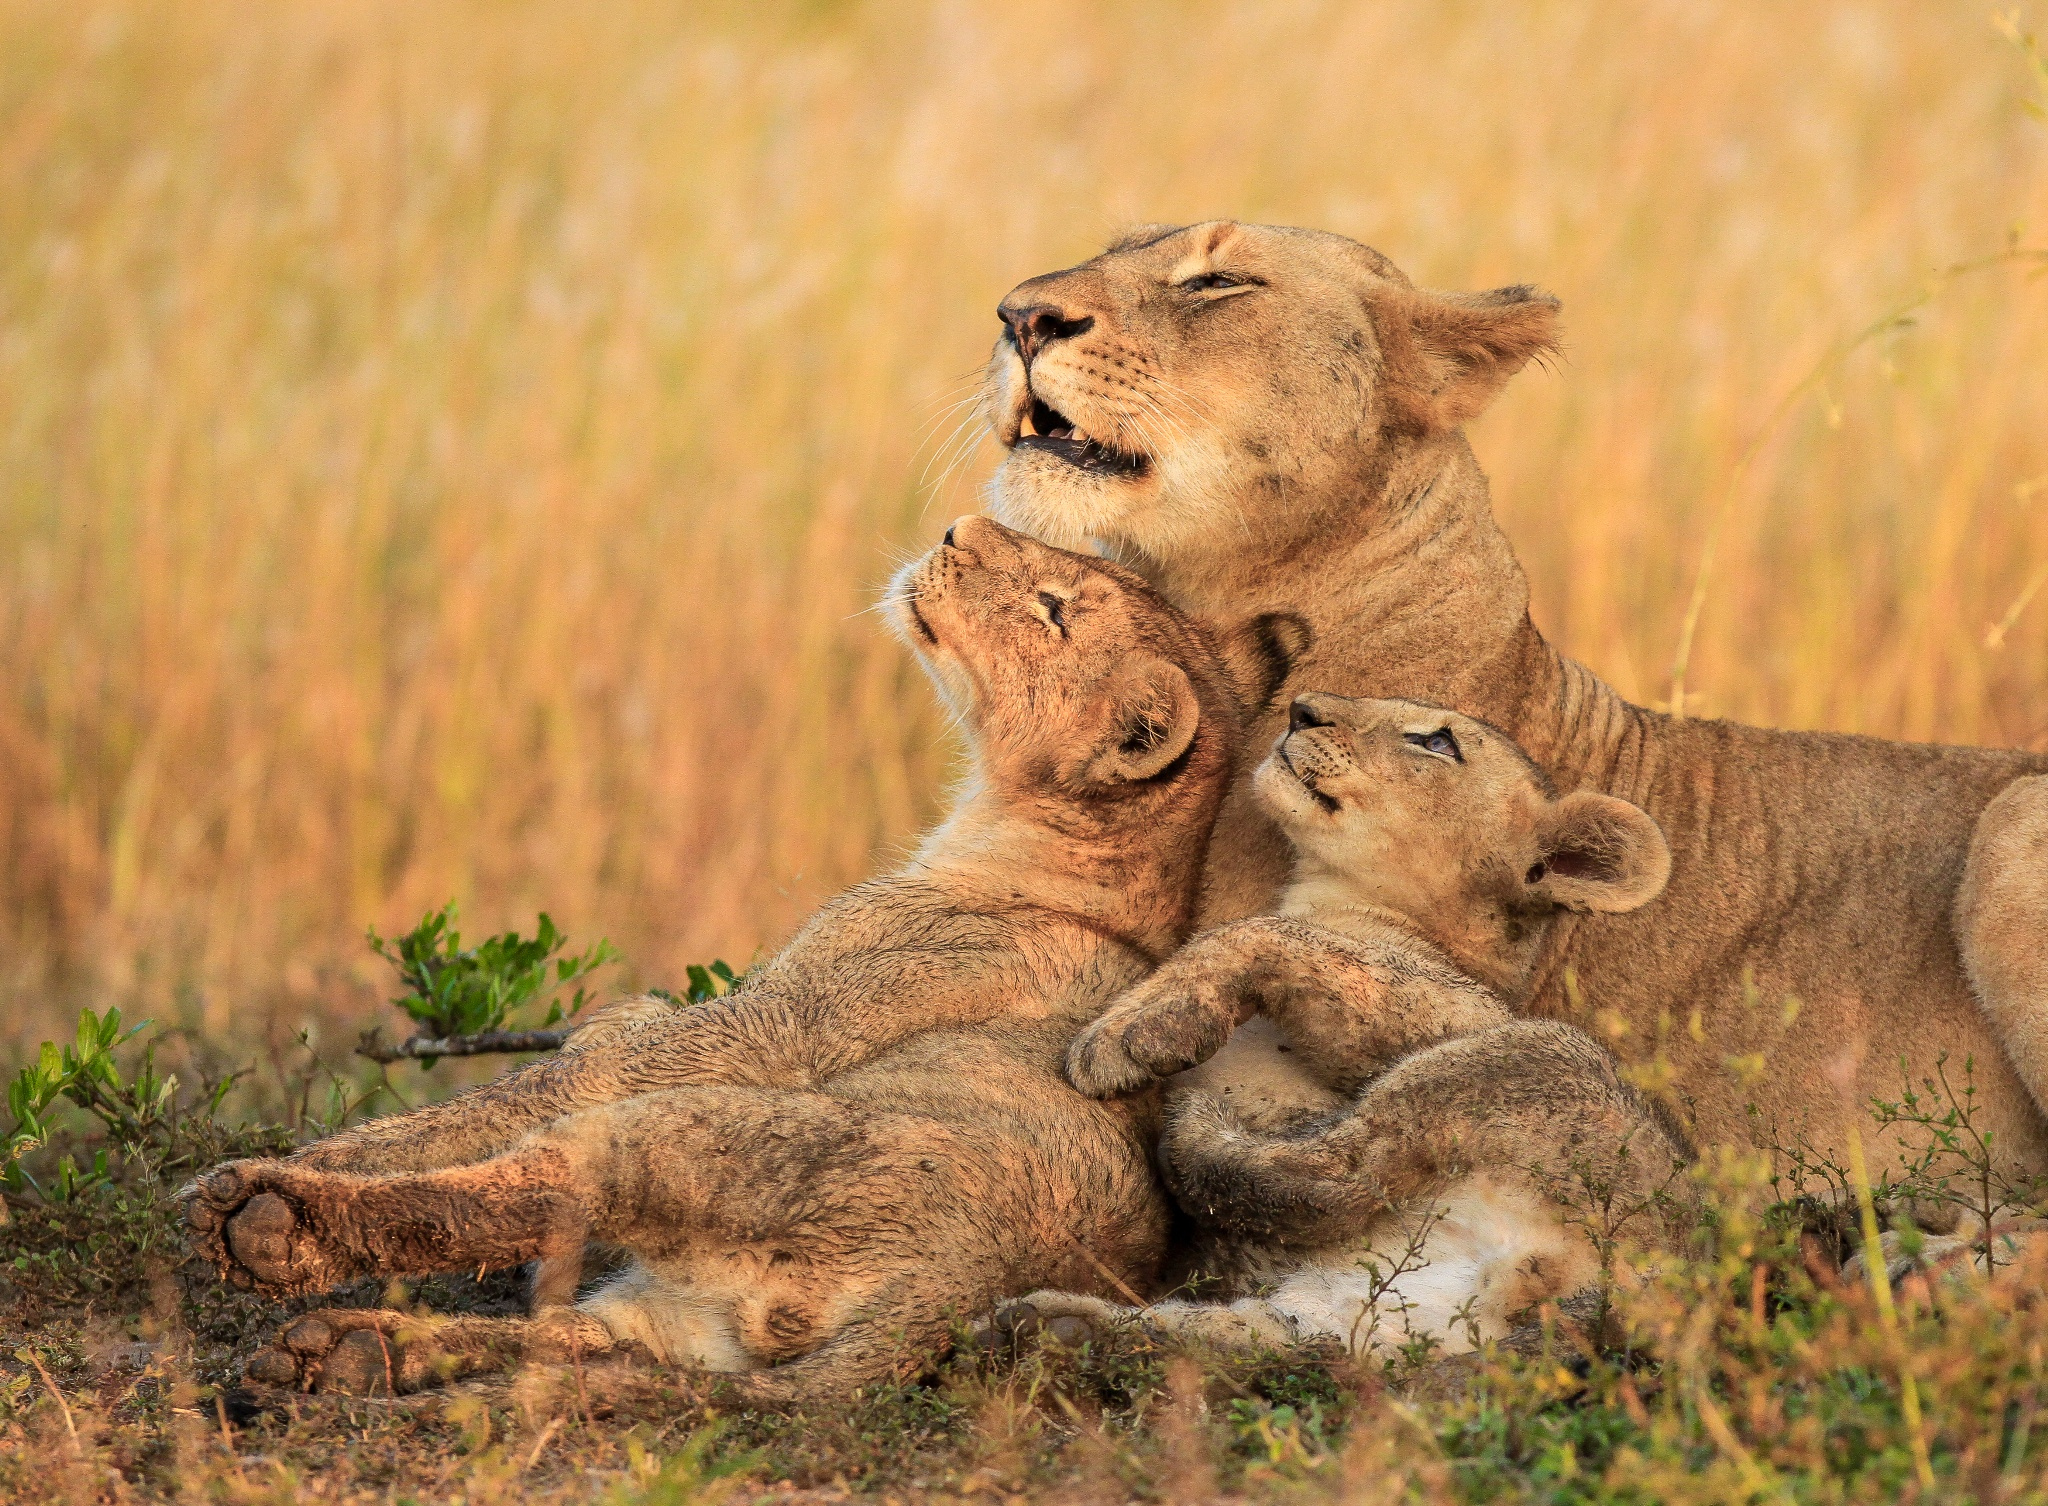 5 Reasons Every Photographer Should Go On An African Safari